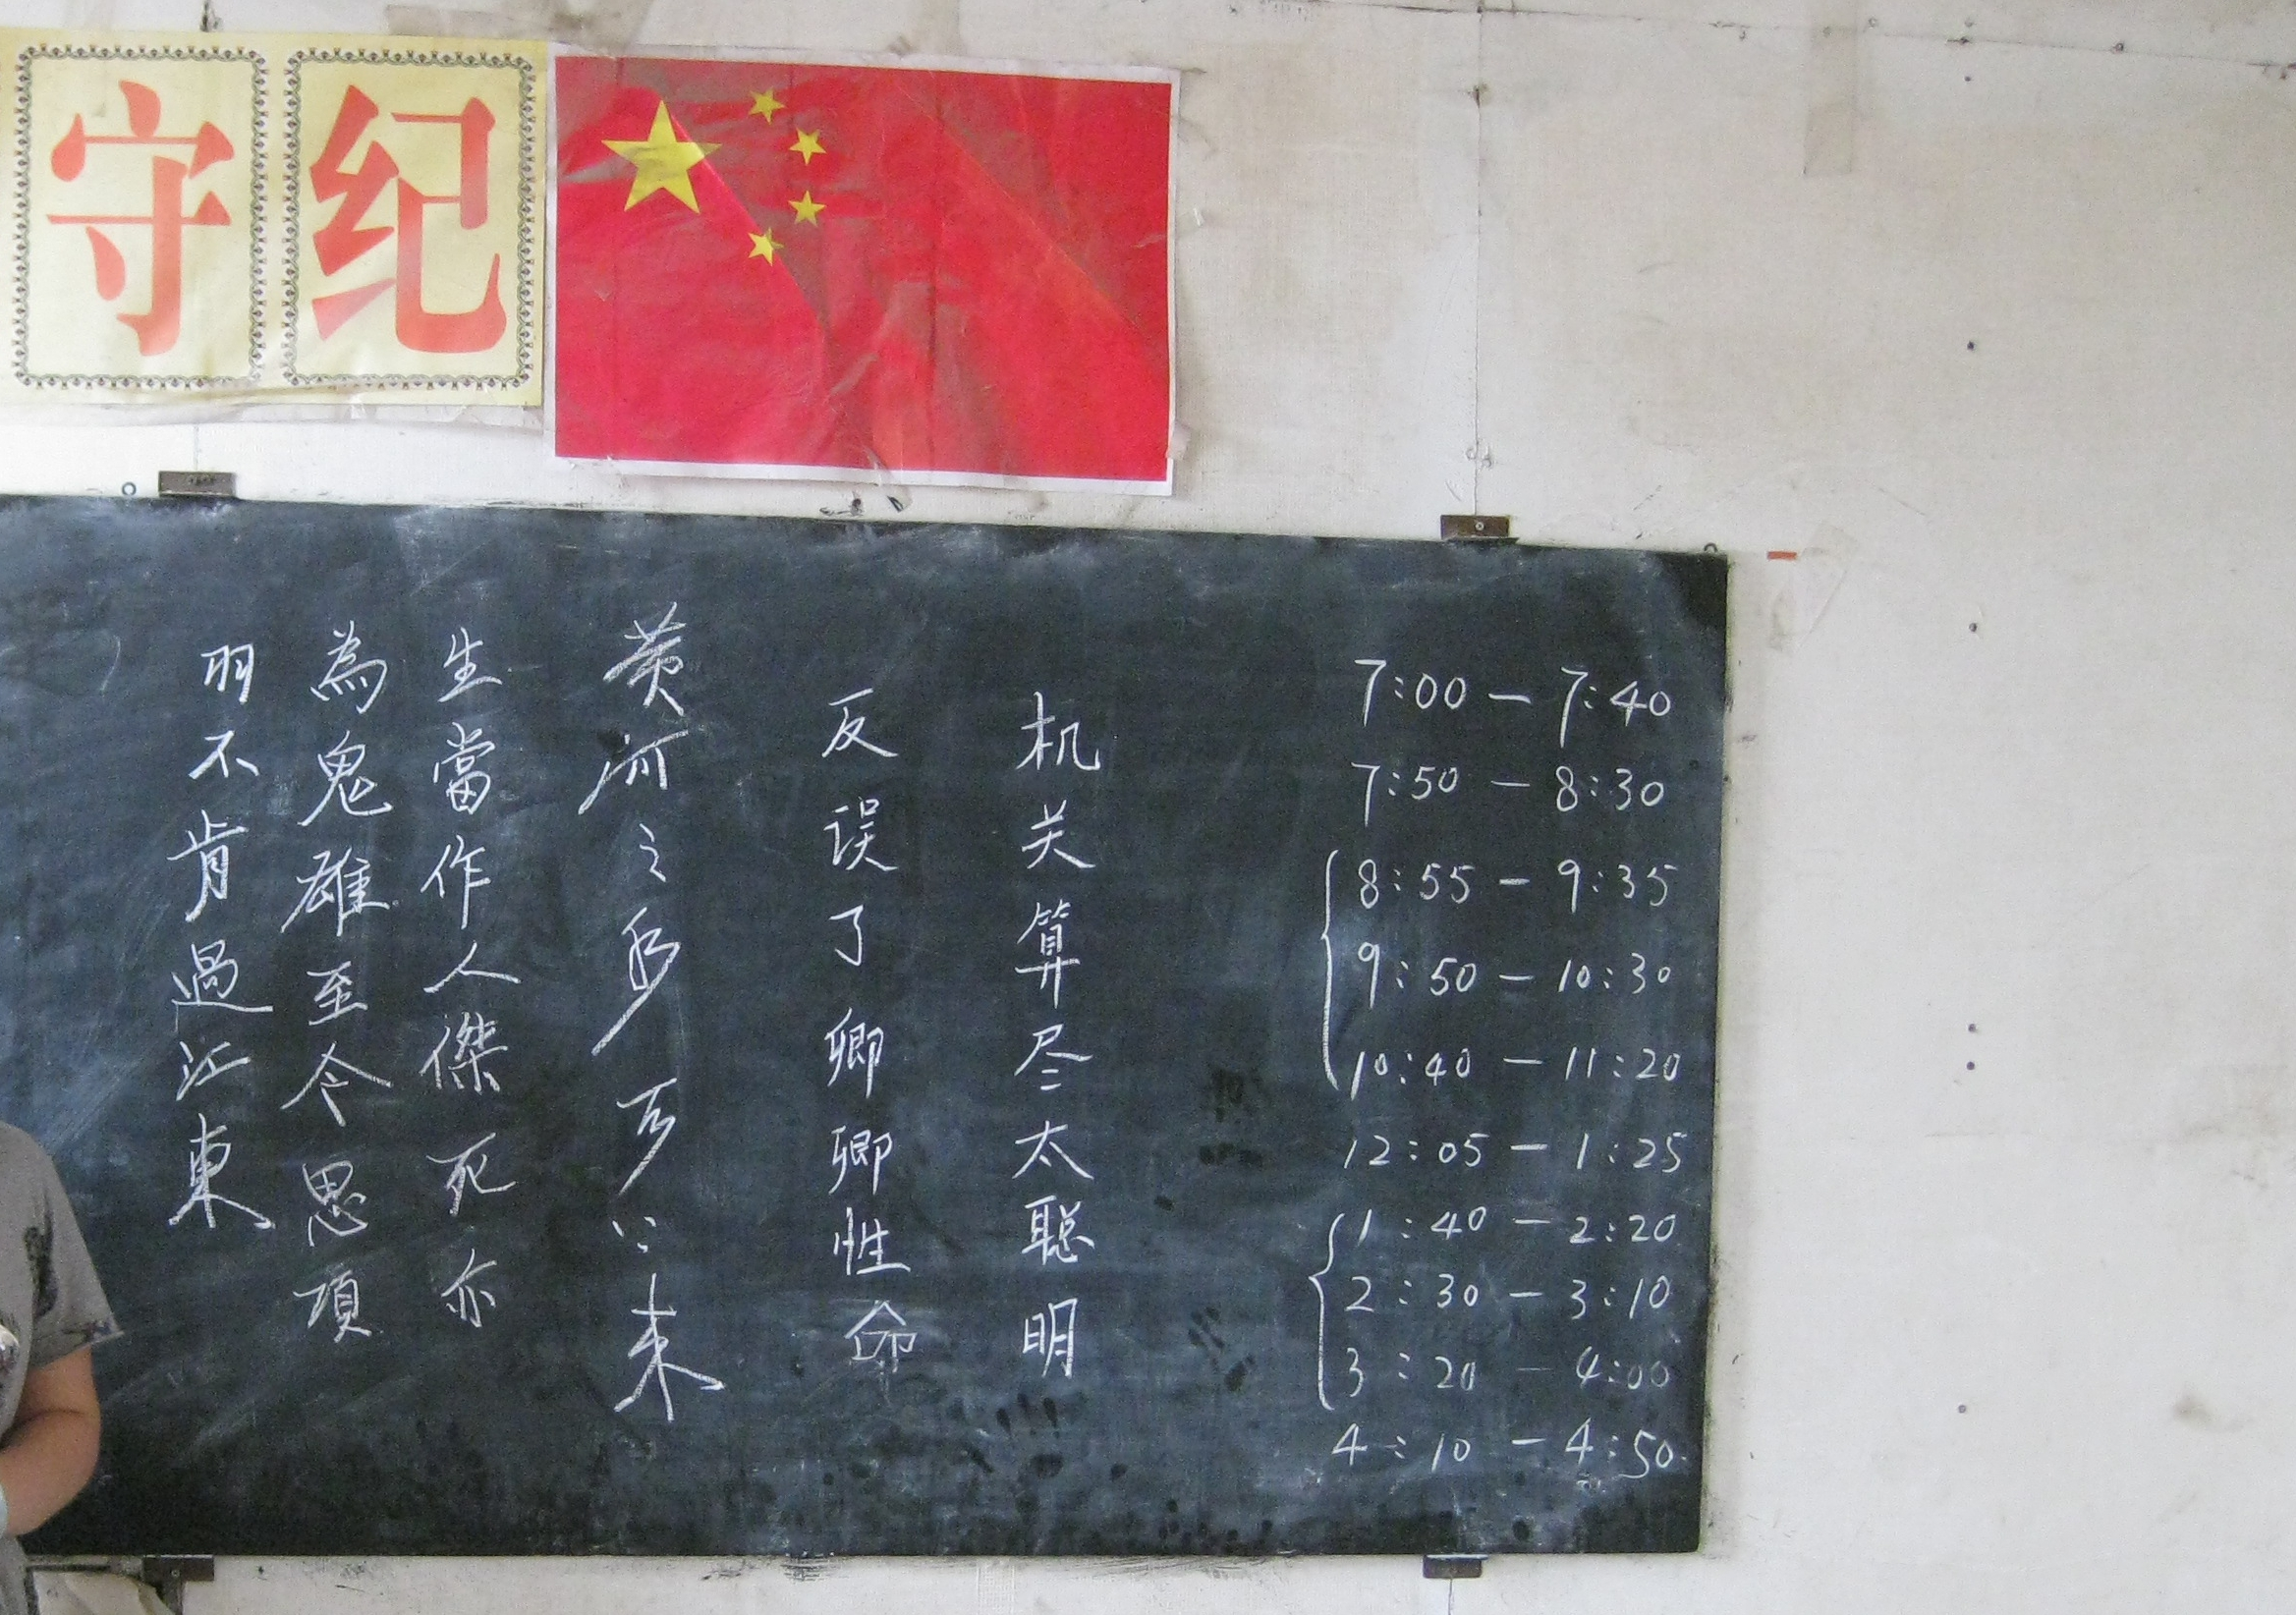 A blackboard with Chinese script in a school. Above the board hangs the national flag of China.